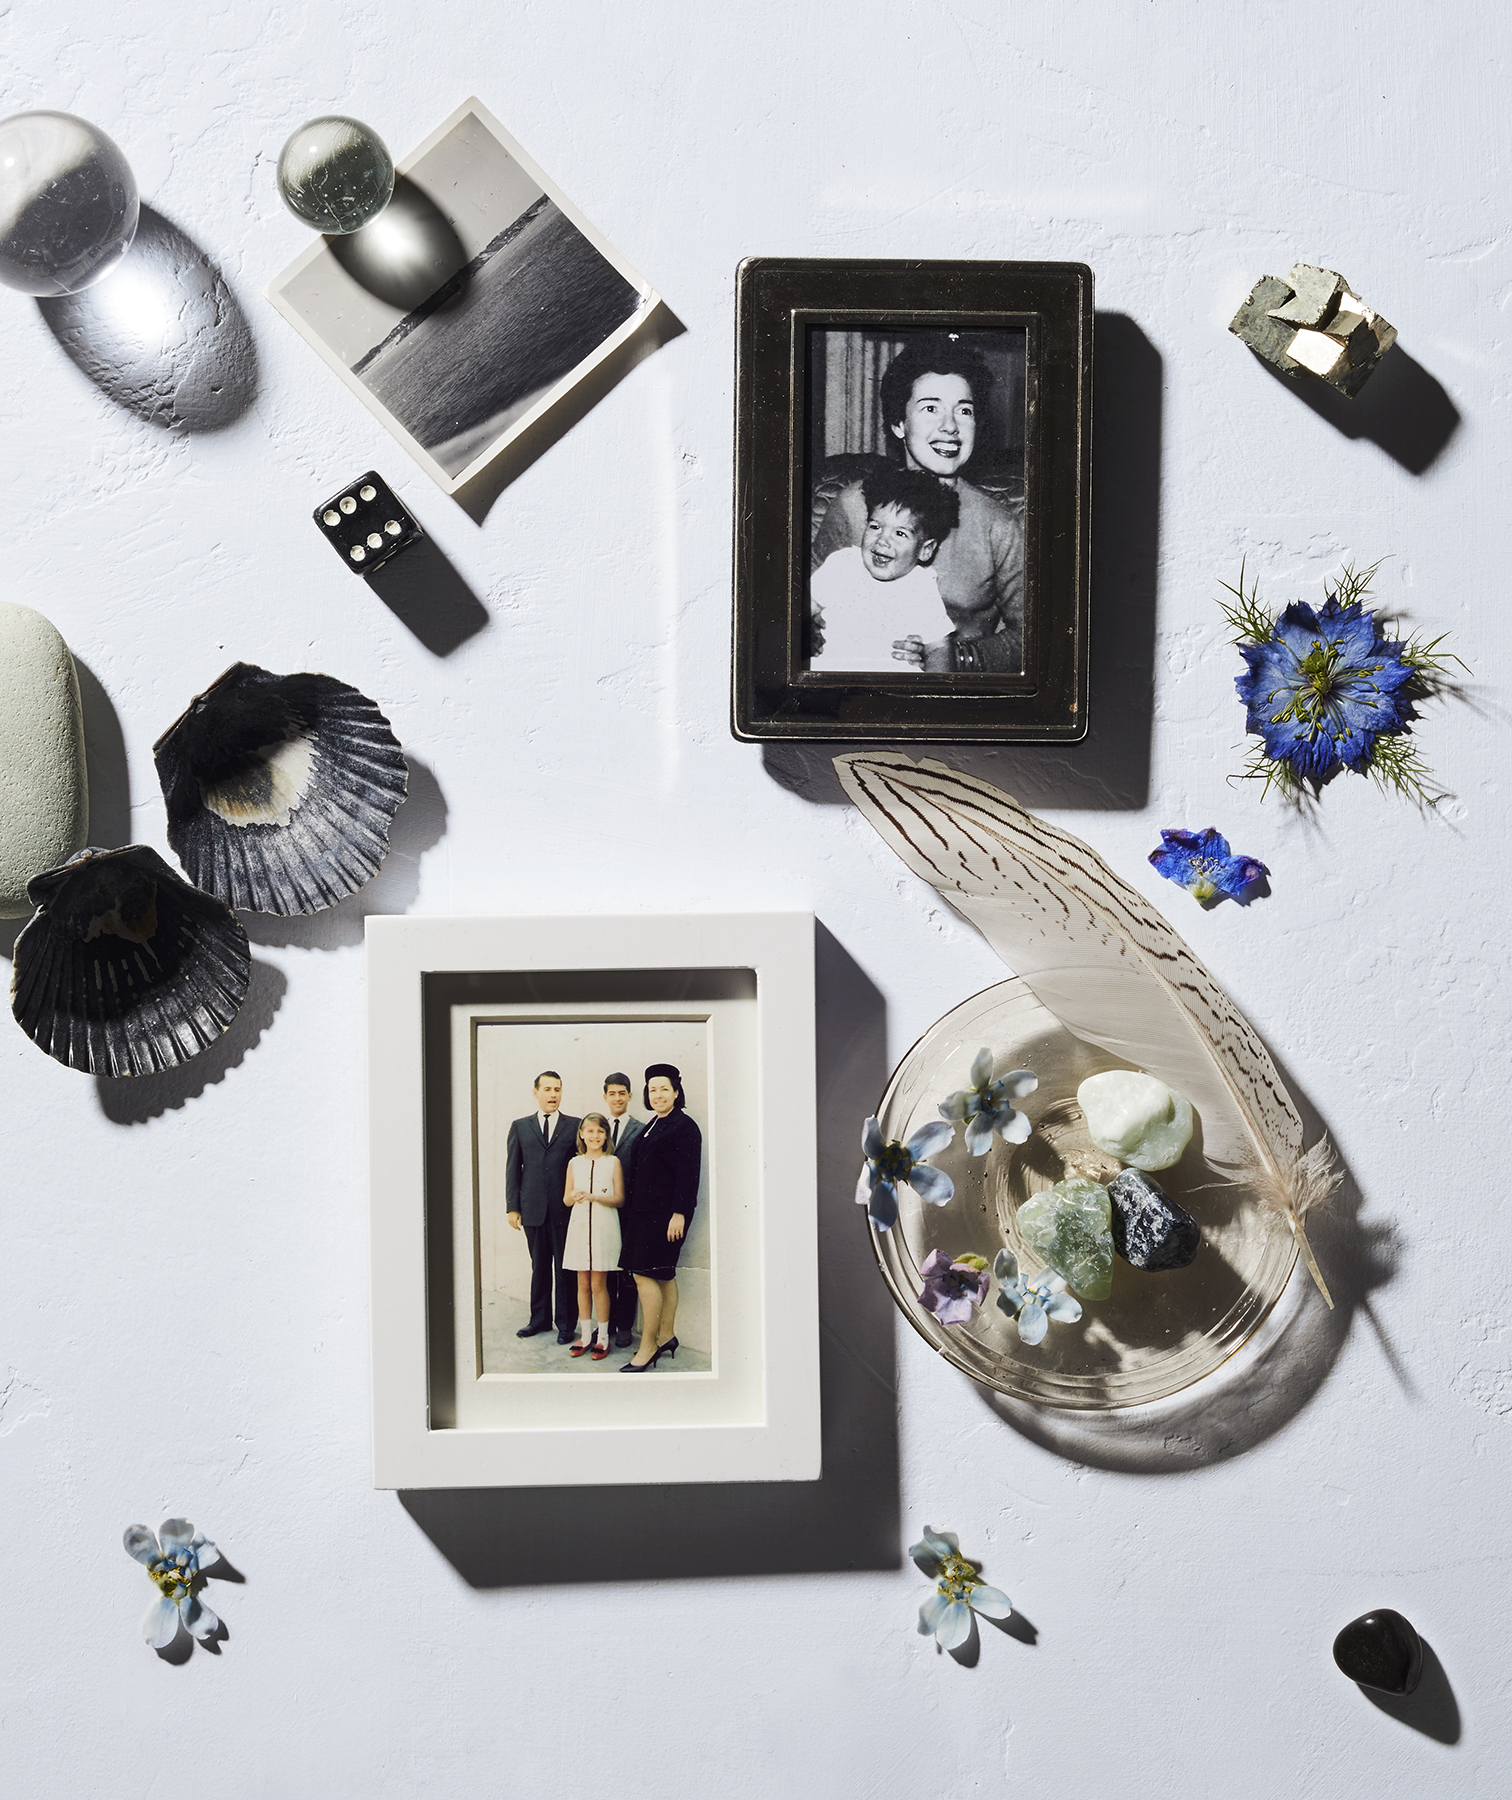 Family photos and personal objects